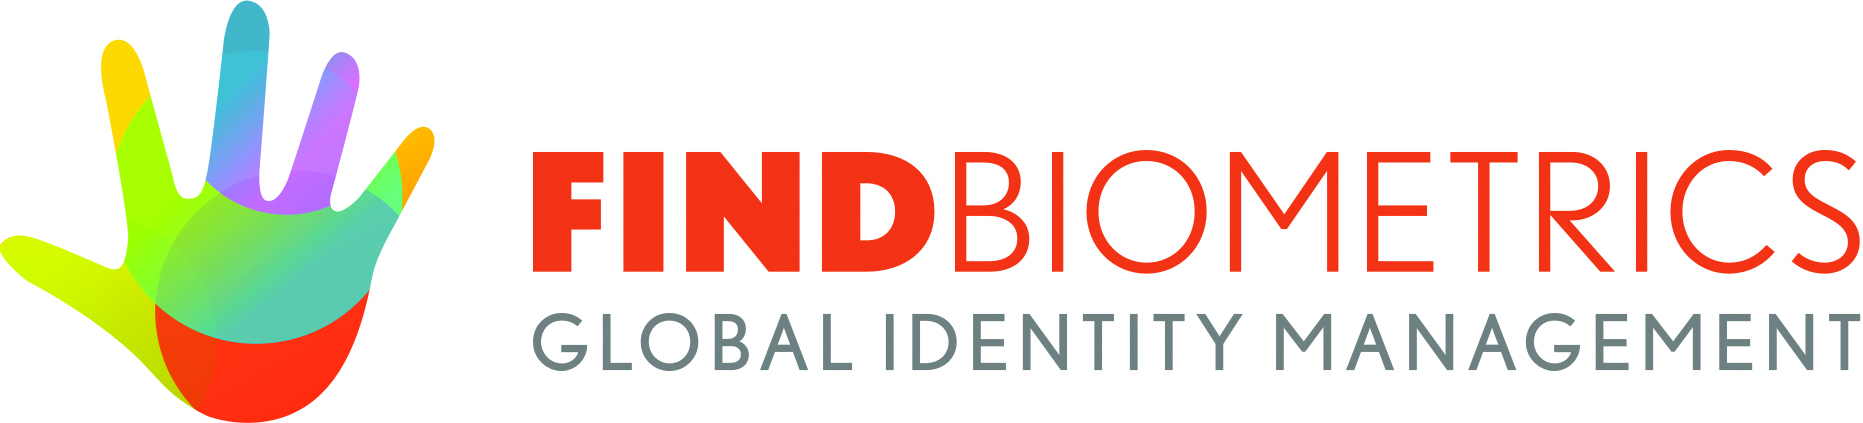 find biometrics logo